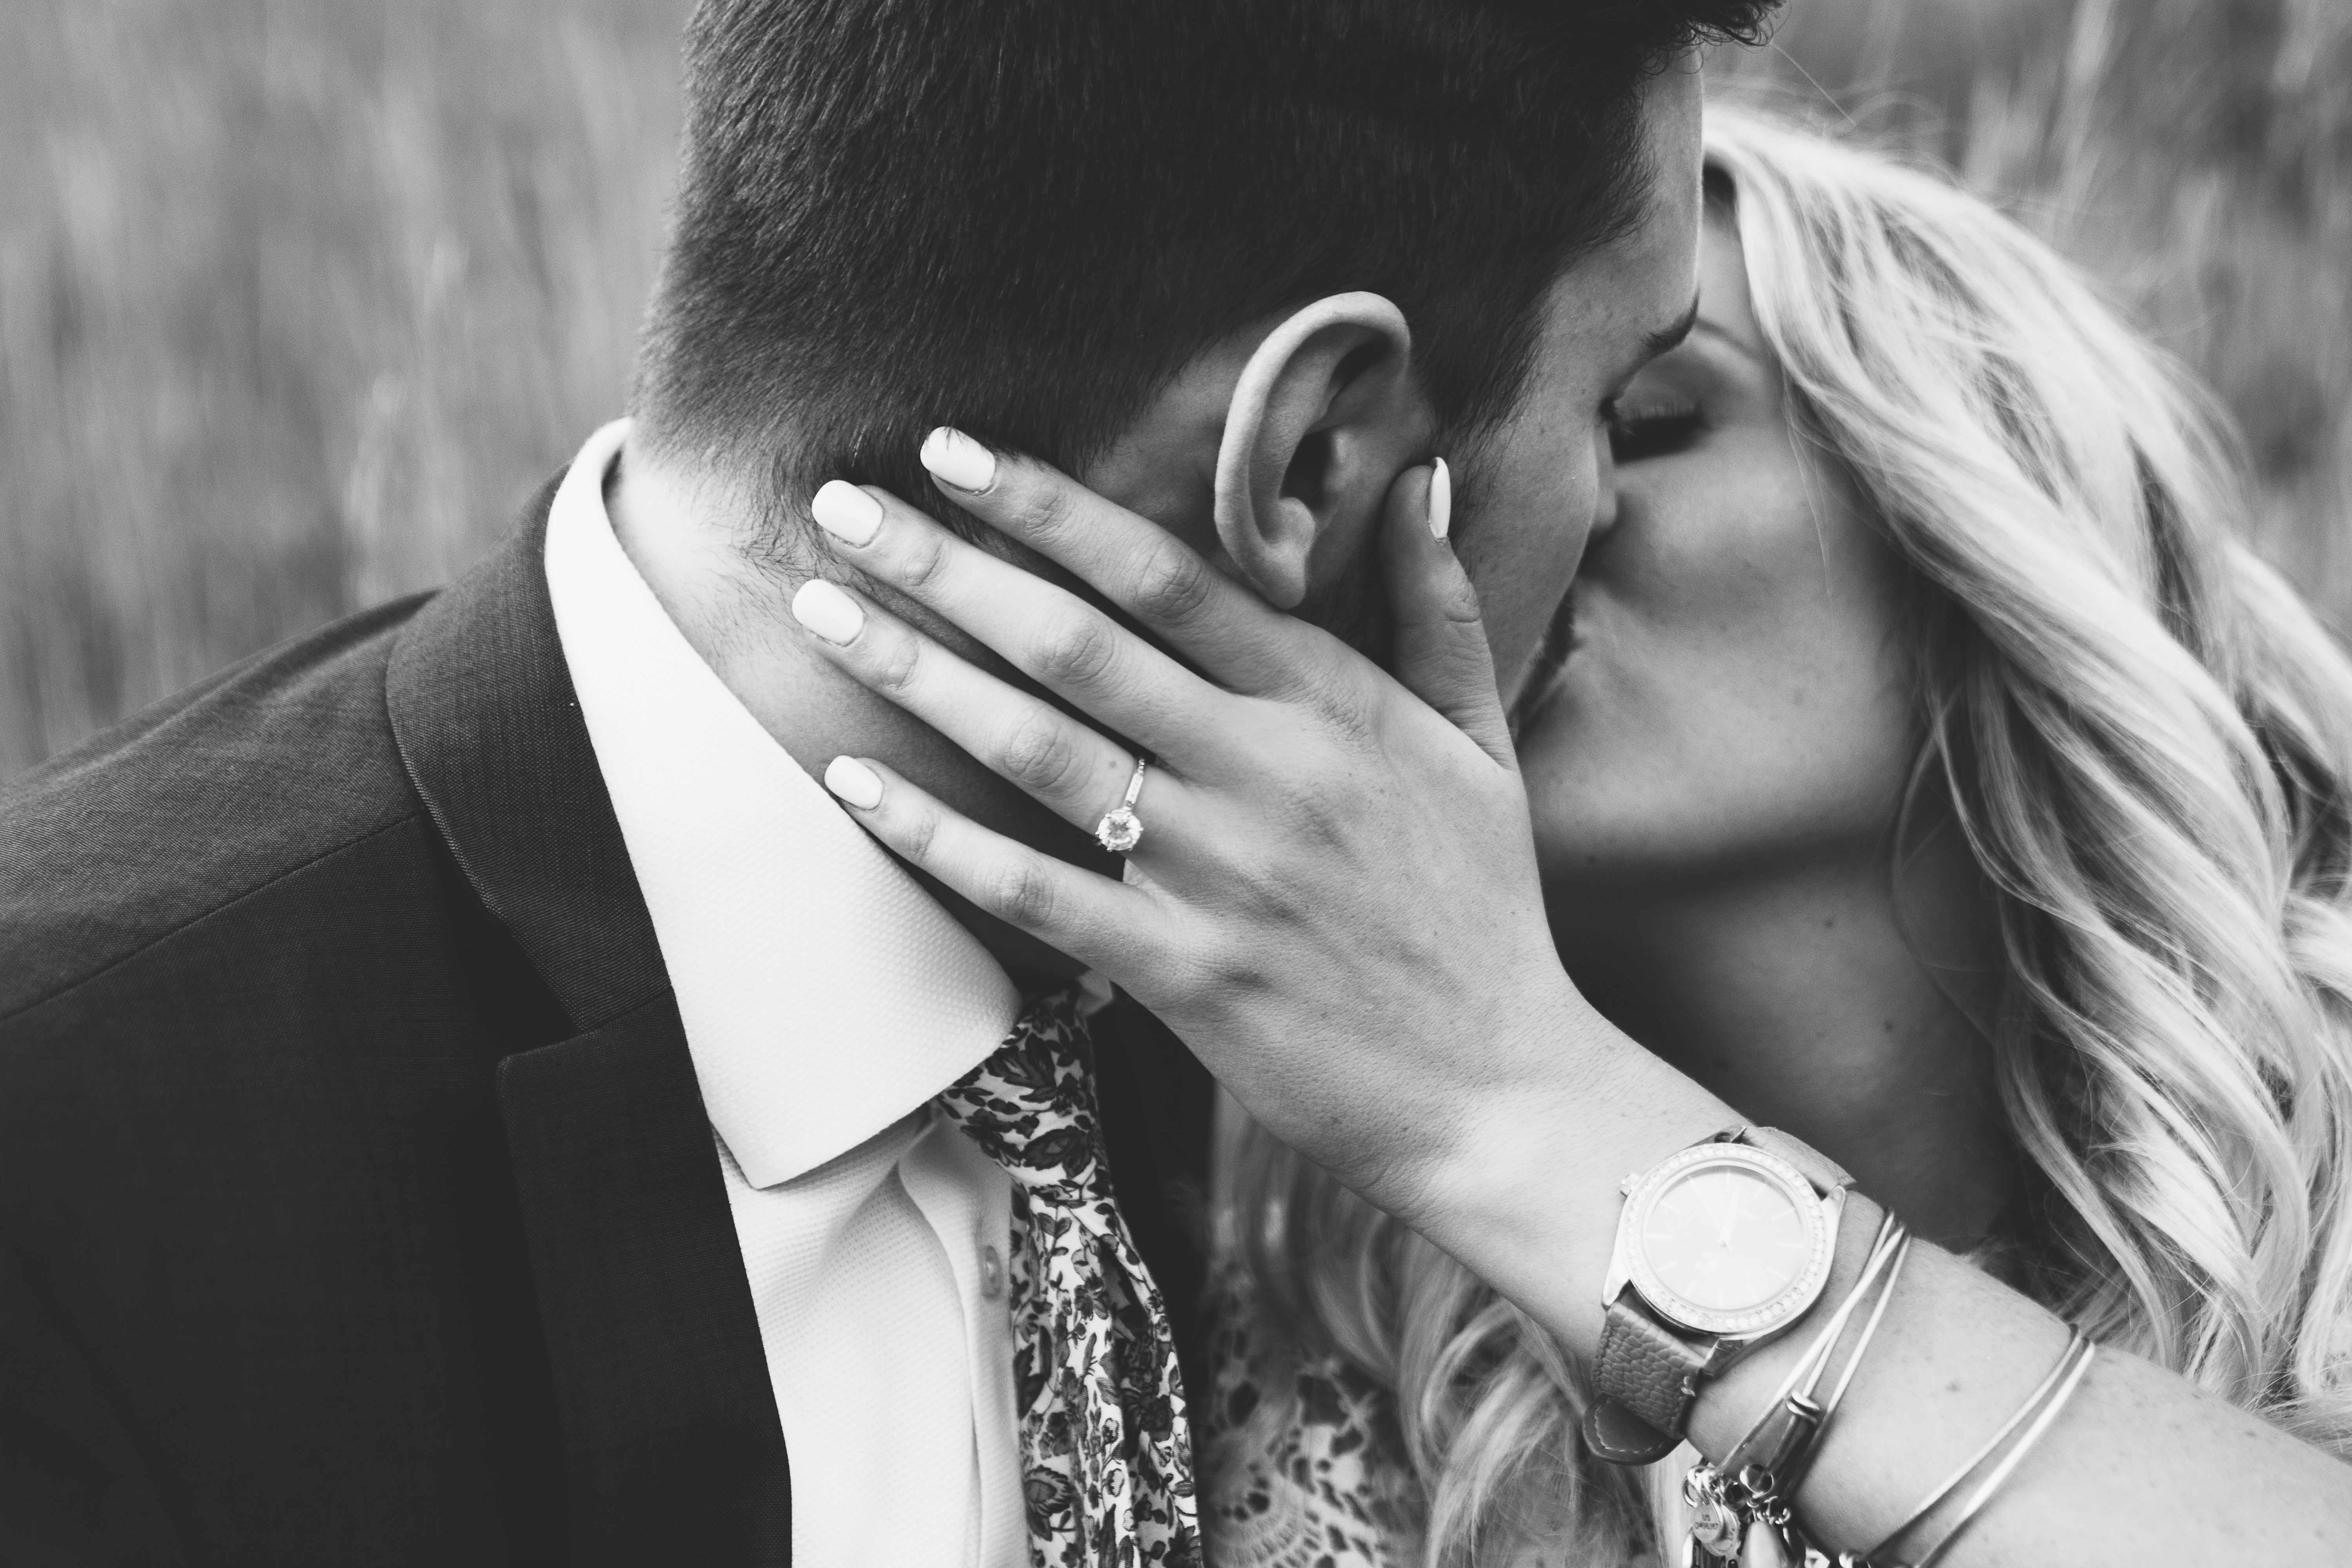 Woman holds a man she's kissing in black and white photo